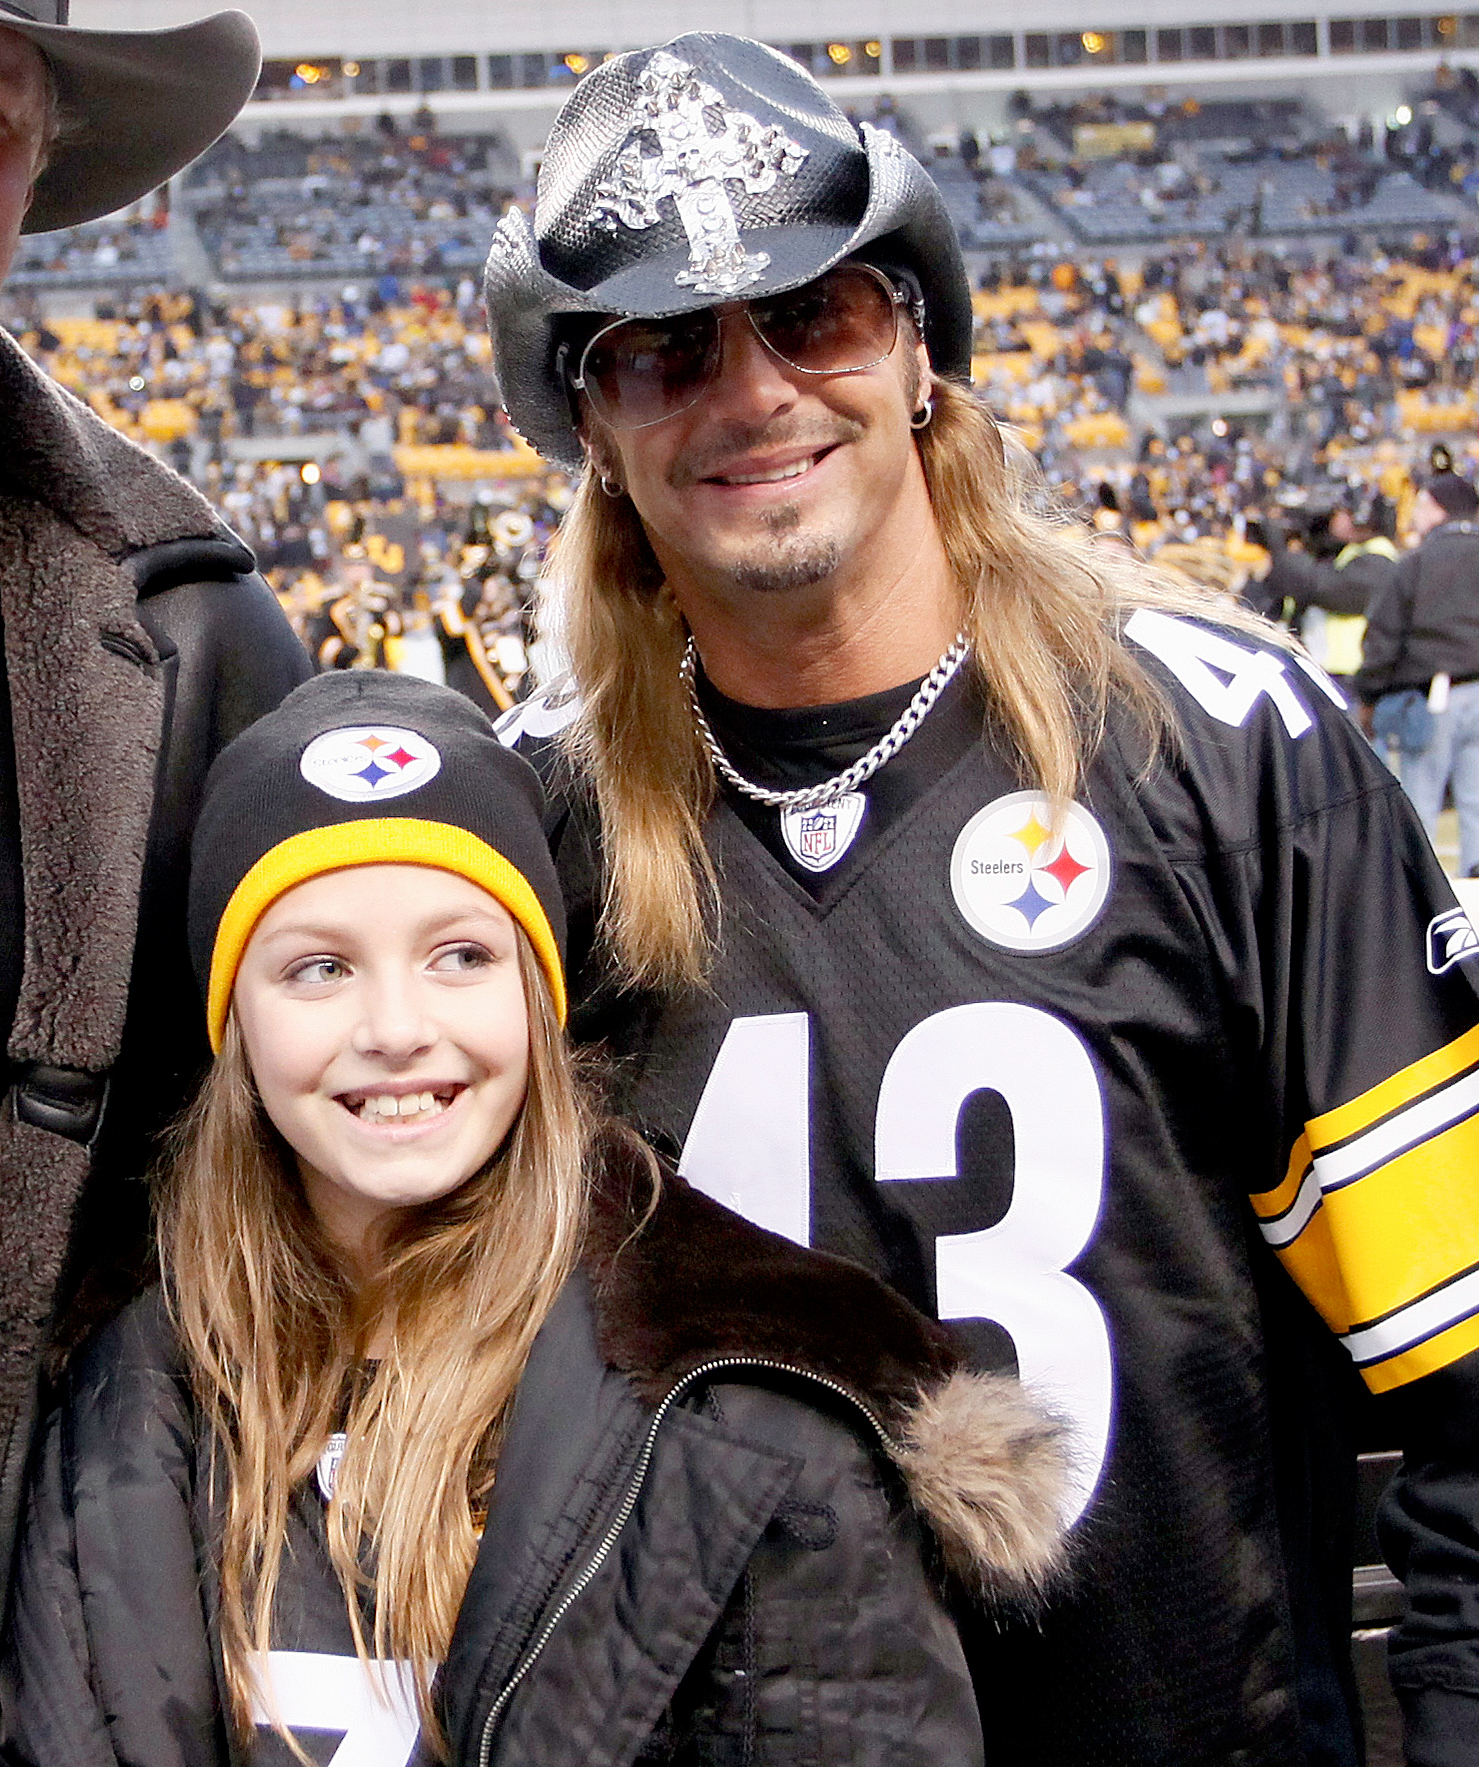 Raine-Bret-MIchaels - Bret Michaels and his daughter Raine Elizabeth Sychak before the game between the Pittsburgh Steelers and the Baltimore Ravens during the AFC Divisional Playoff at Heinz Field on January 15, 2011 in Pittsburgh, Pennsylvania.